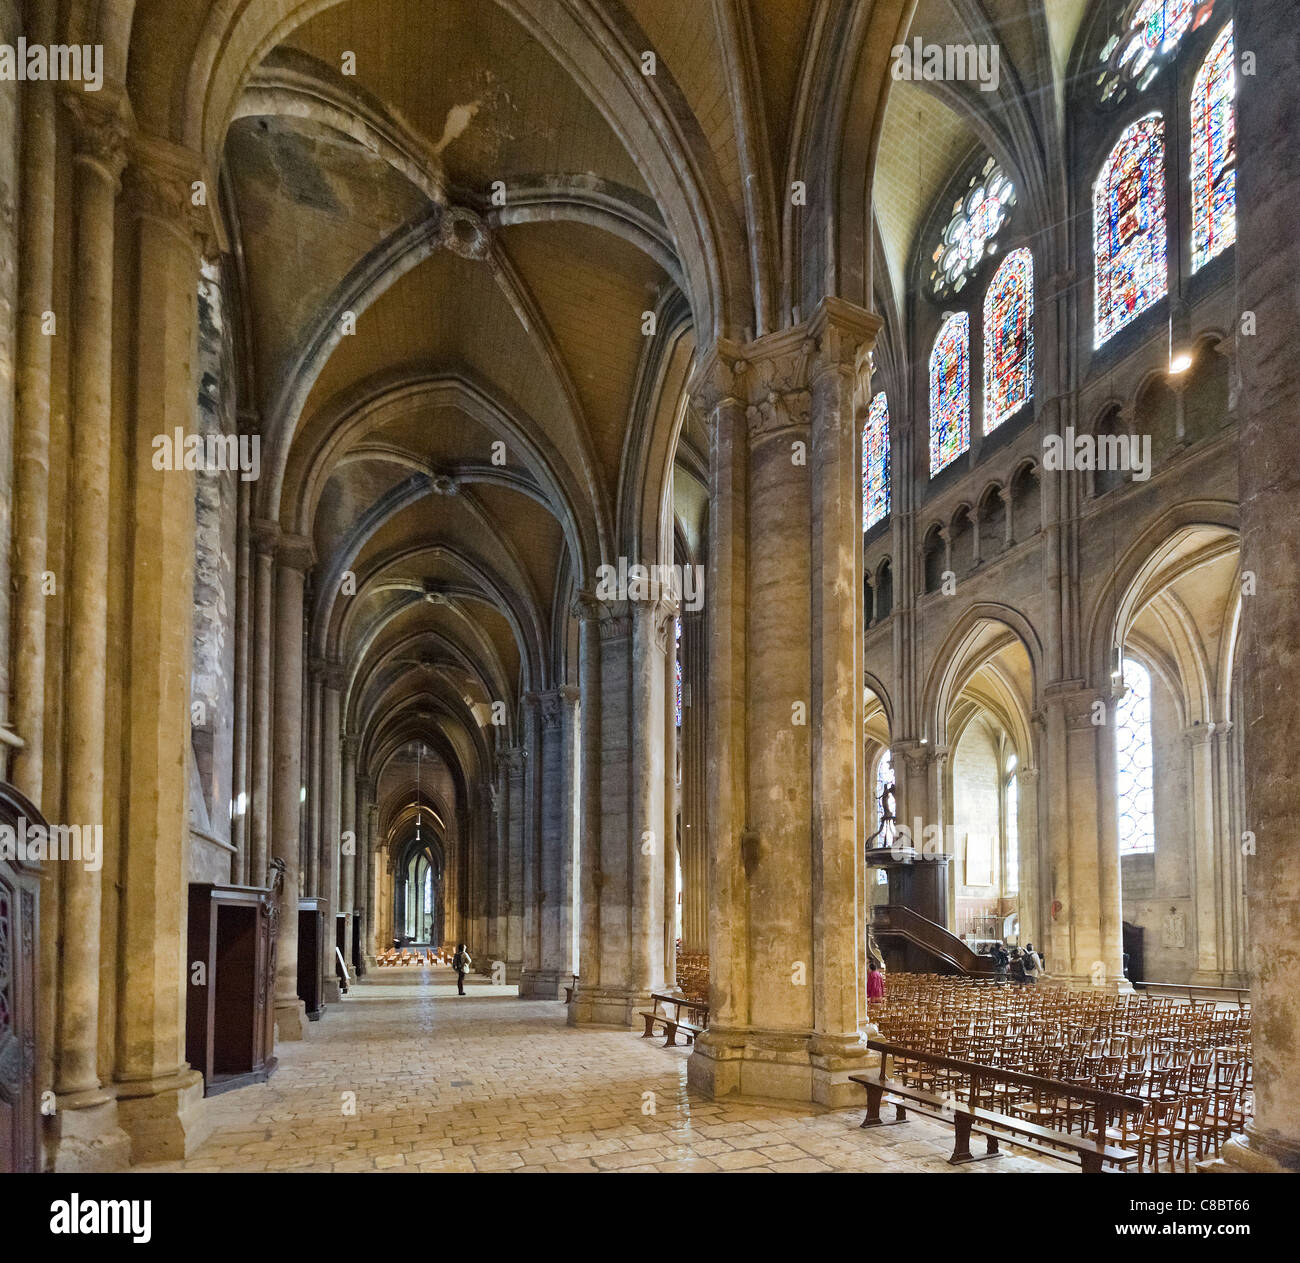 Interior of the Cathedral of Notre Dame, Chartres, France - Stock Image